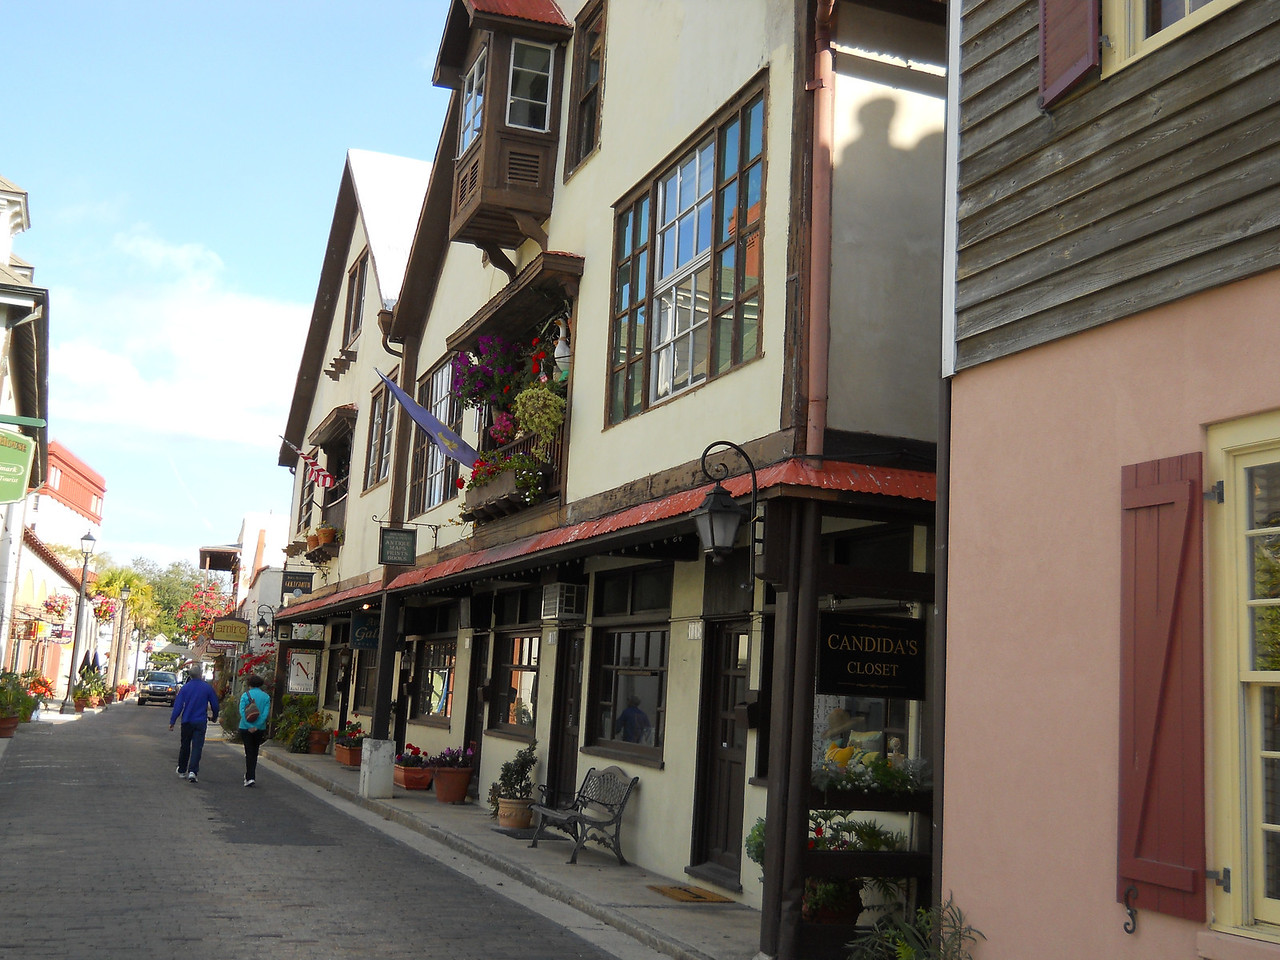 One of the small historic streets